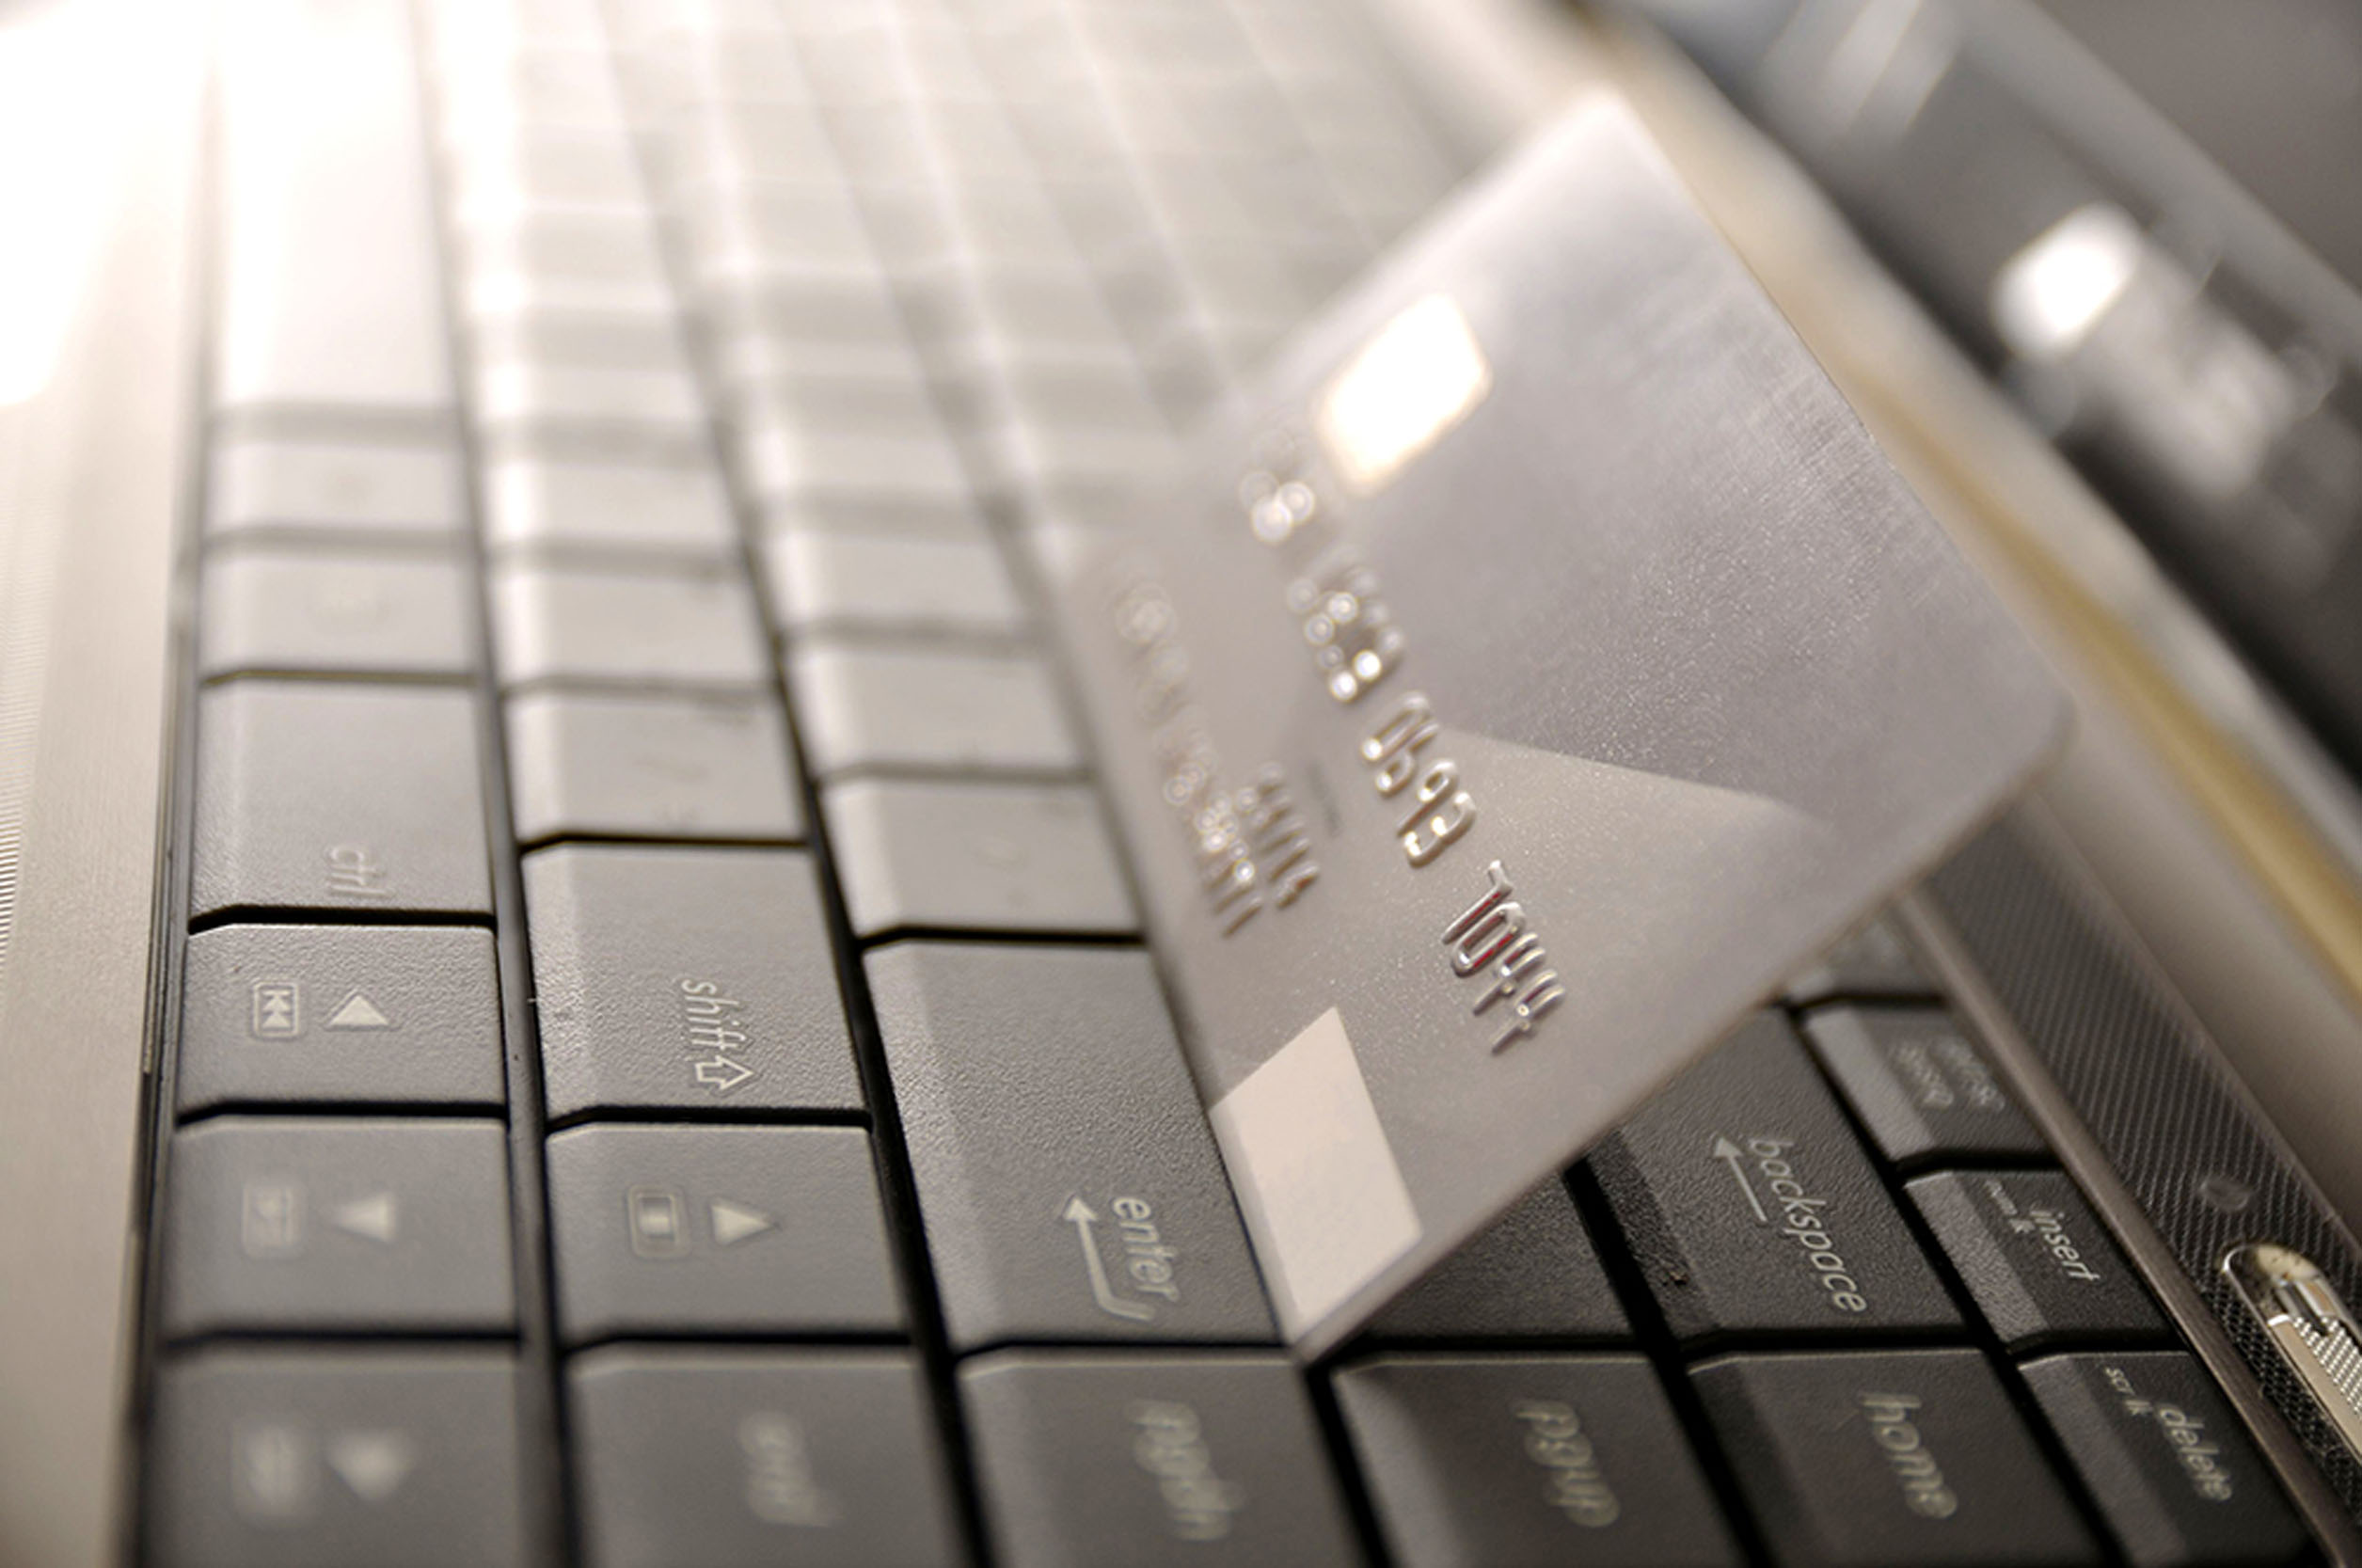 Do I need to worry about PCI DSS compliance?